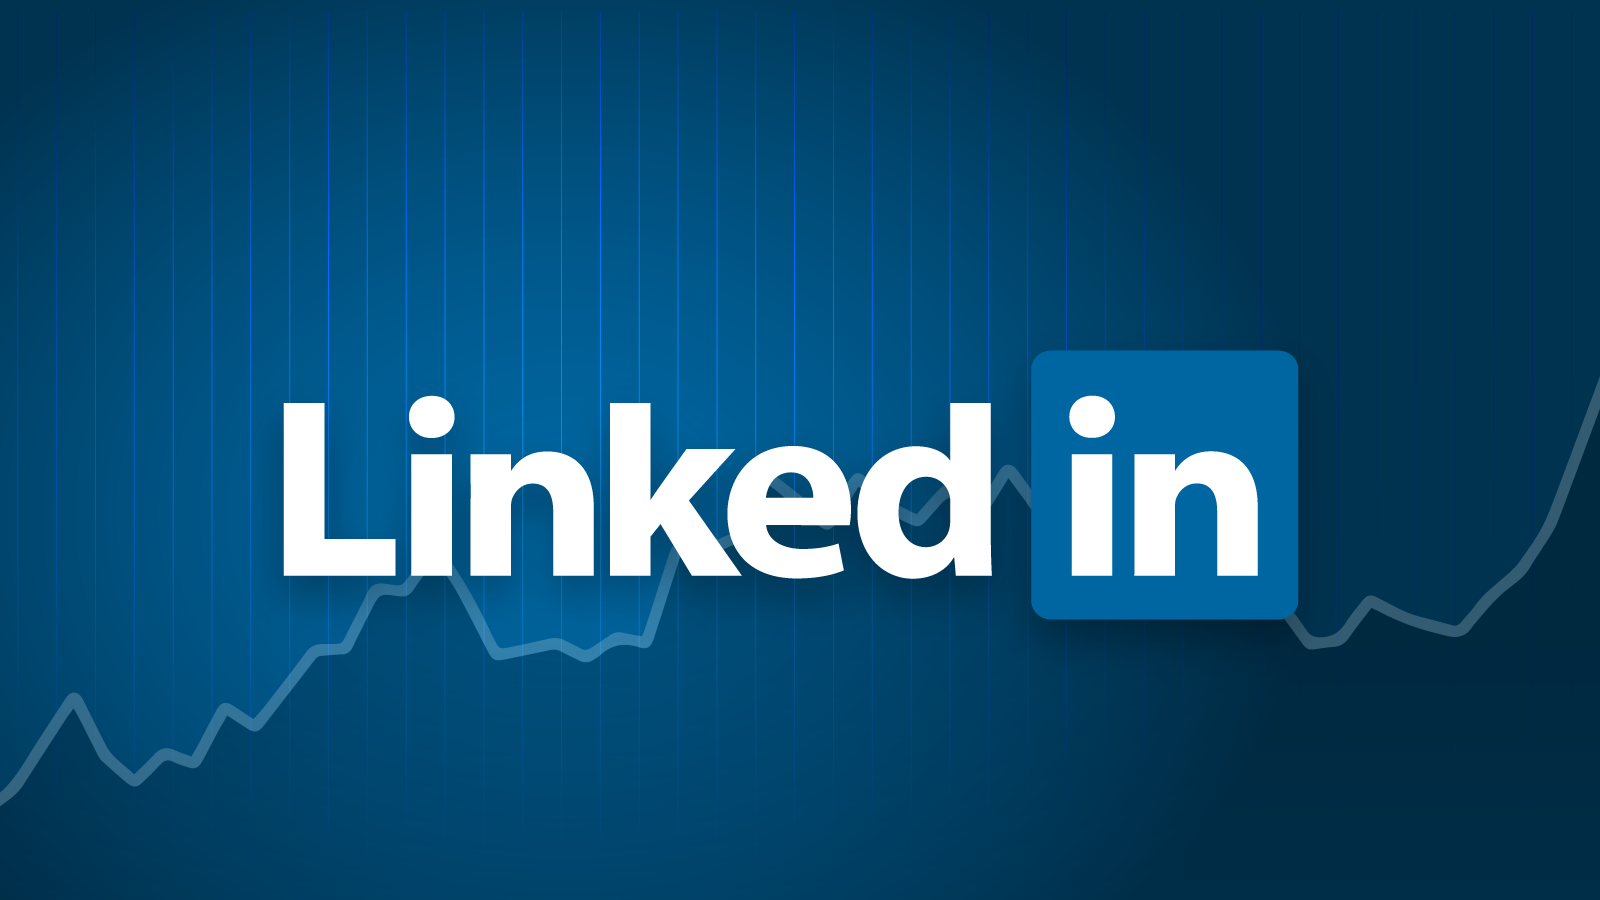 LinkedIn Earnings Beat Expectations With $780M In Revenue, Stock Jumps 9%